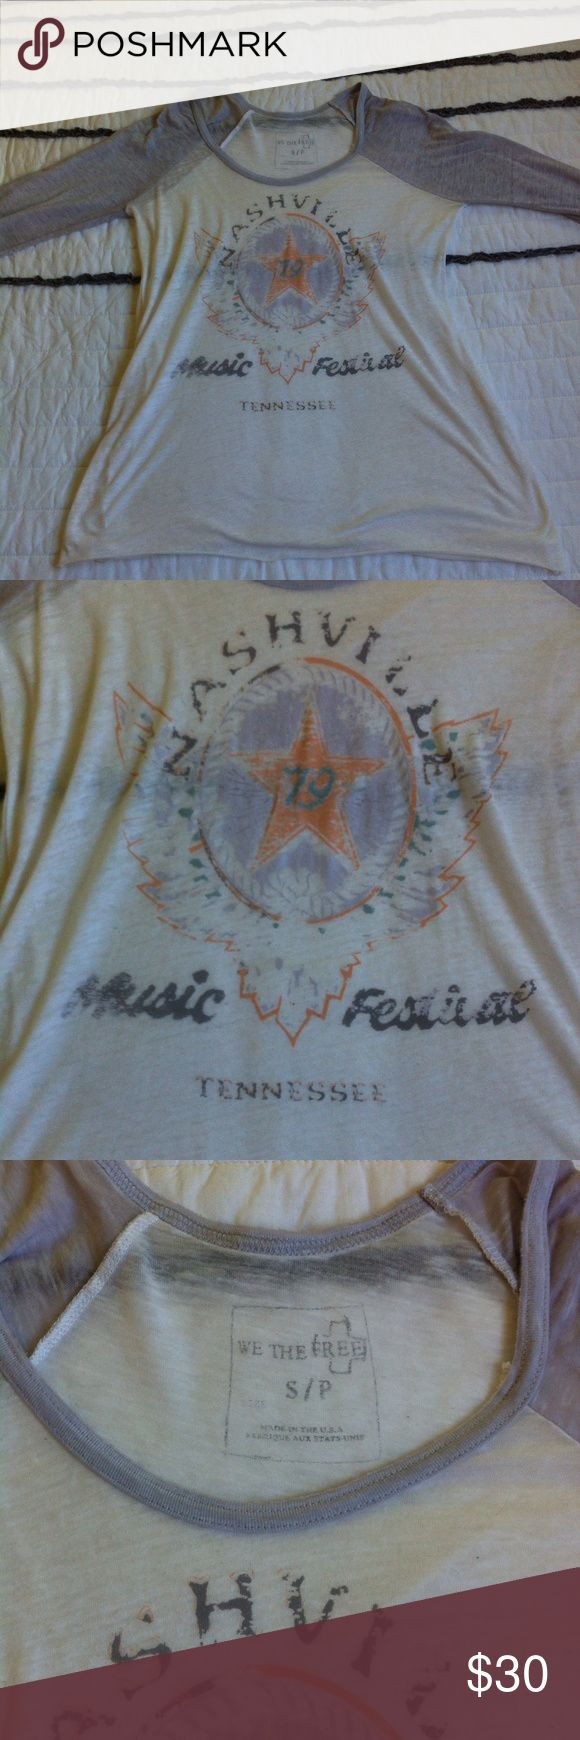 Free People Nashville tee Free People Nashville music festival tee. Light and soft burnout fabric. Excellent condition. Hems are intentional raw and distressed Free People Tops